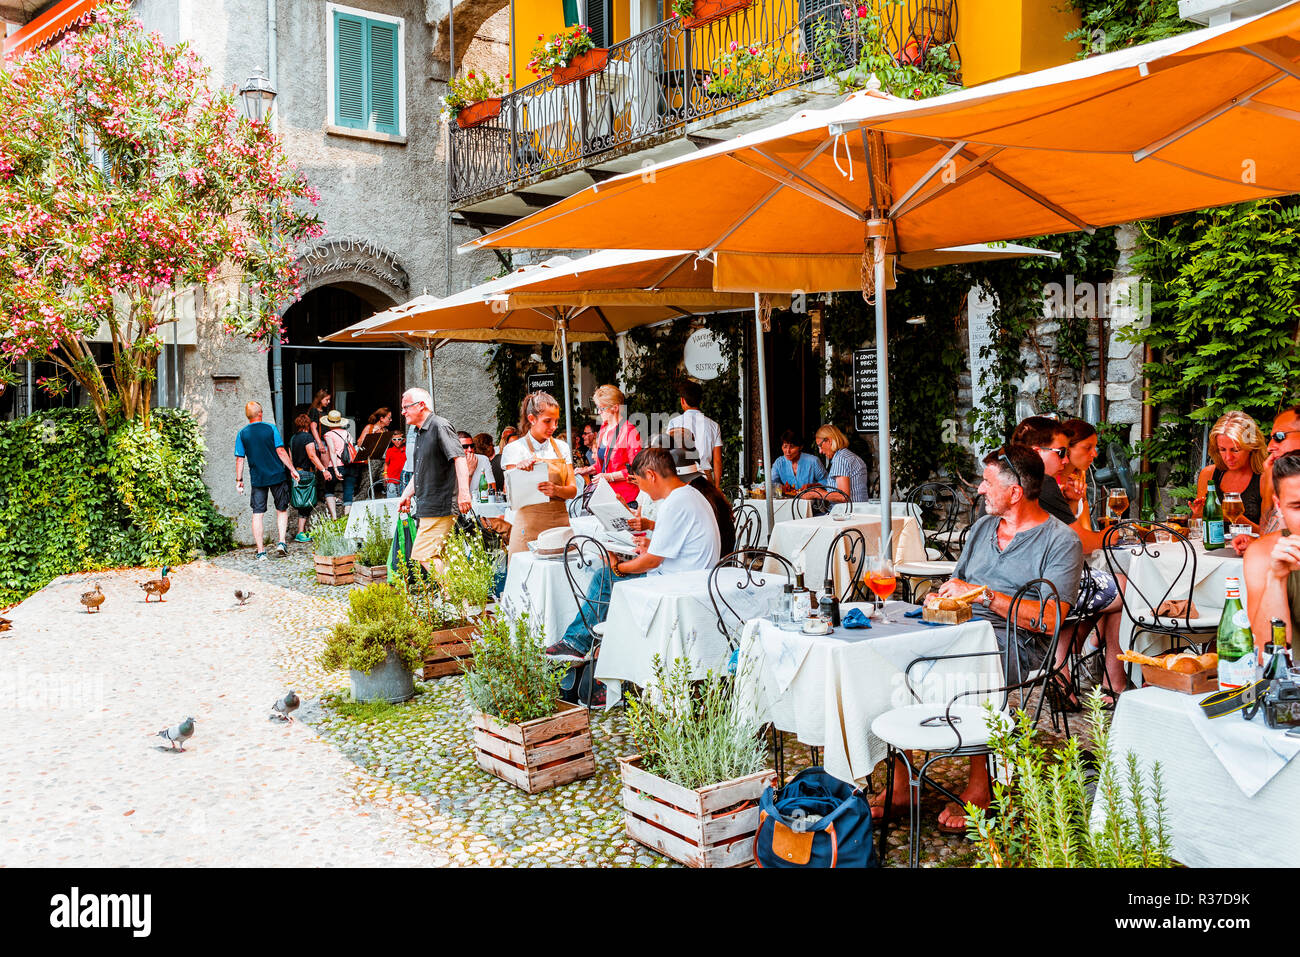 Varenna Caffe, Bistrot. Outdoor restaurant terrace. Varenna, Province of Lecco, Lombardy, Italy, Europe - Stock Image